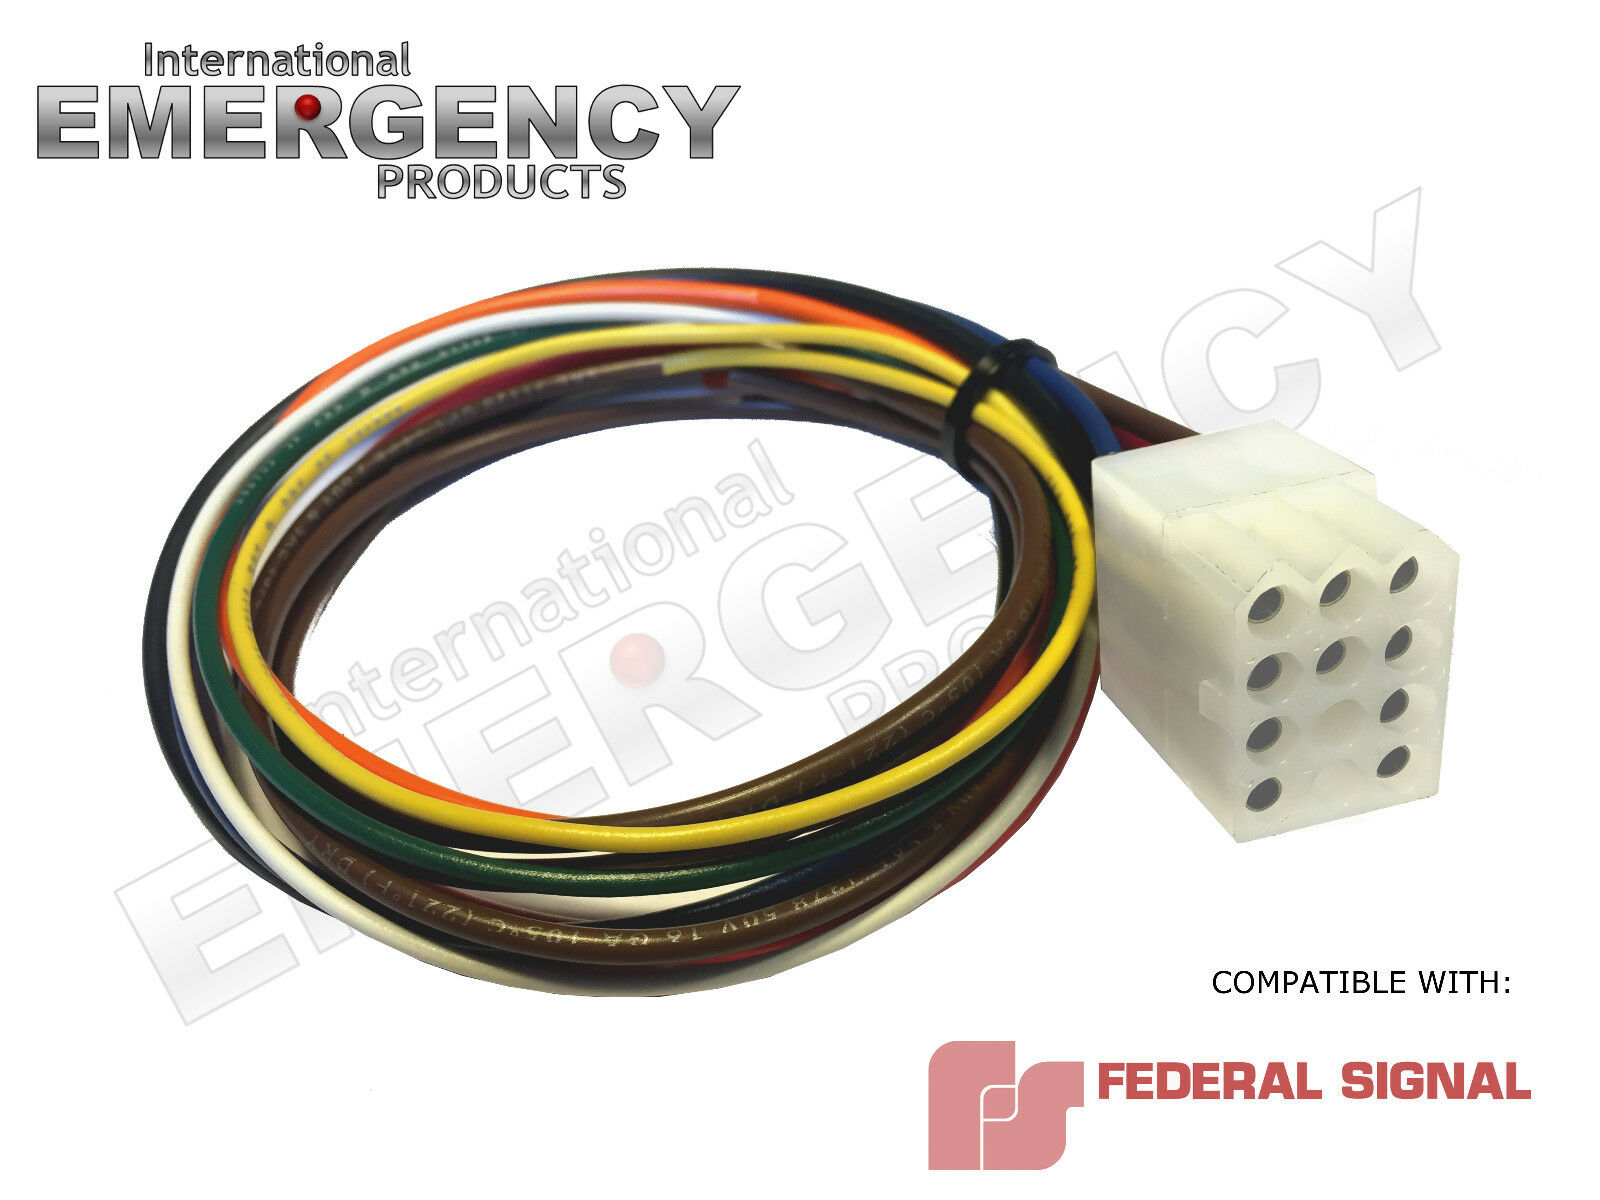 [SCHEMATICS_48YU]  12 Pin Connector Plug Harness Power Cable for Federal Signal Siren Pa-300  Ss2000 for sale online | eBay | Federal Pa300 Siren Wiring Diagram |  | eBay